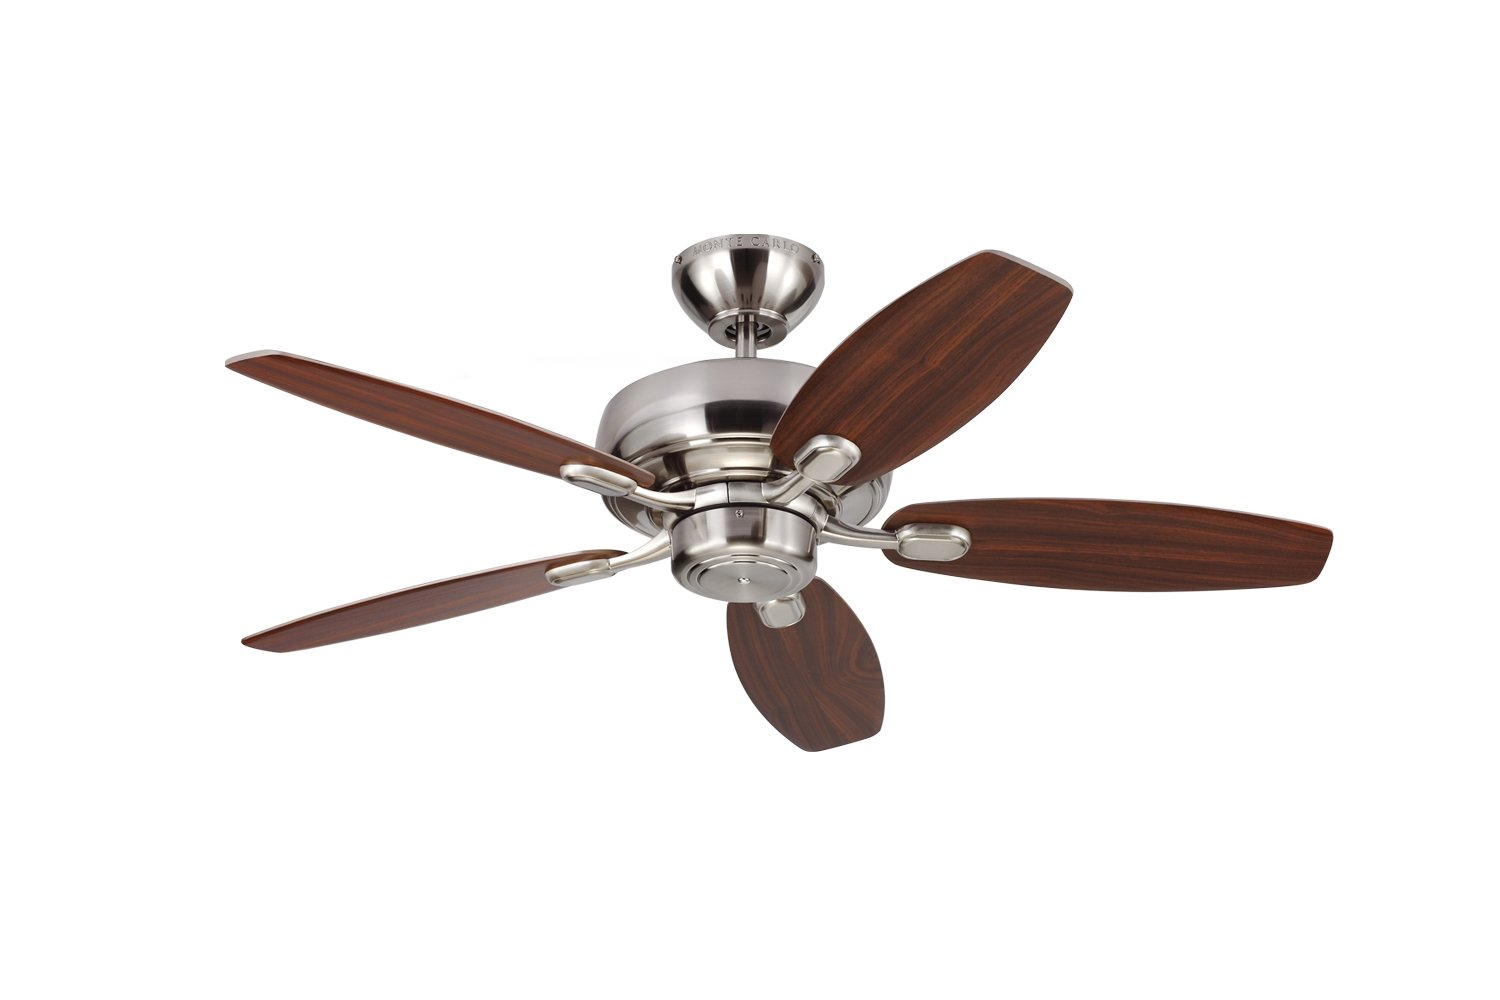 Monte Carlo 5CQM44BS Centro Max II Ceiling Fan, 44'', Brushed Steel